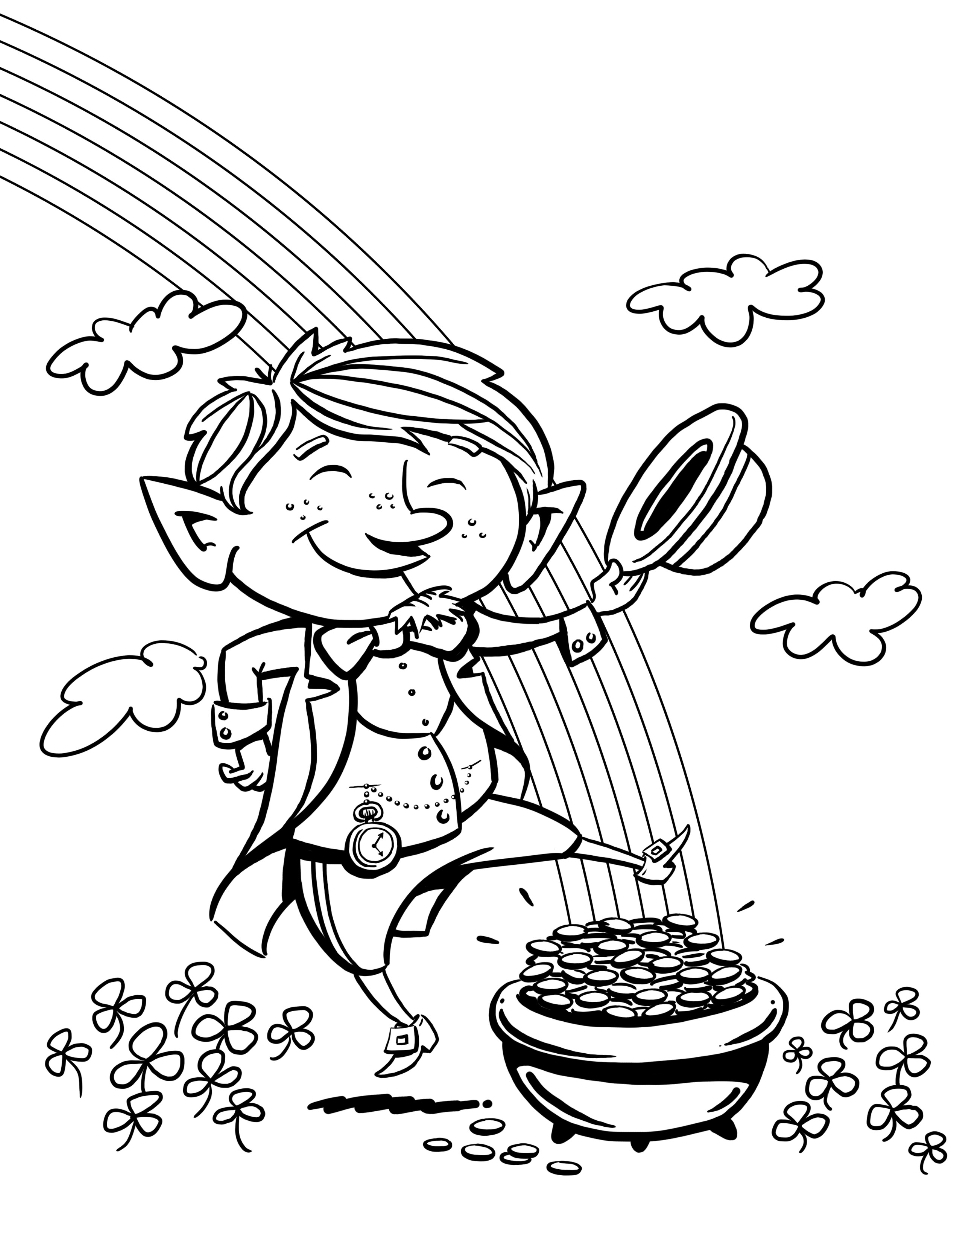 Leprechaun Rainbow - St Patricks Day Coloring Pages